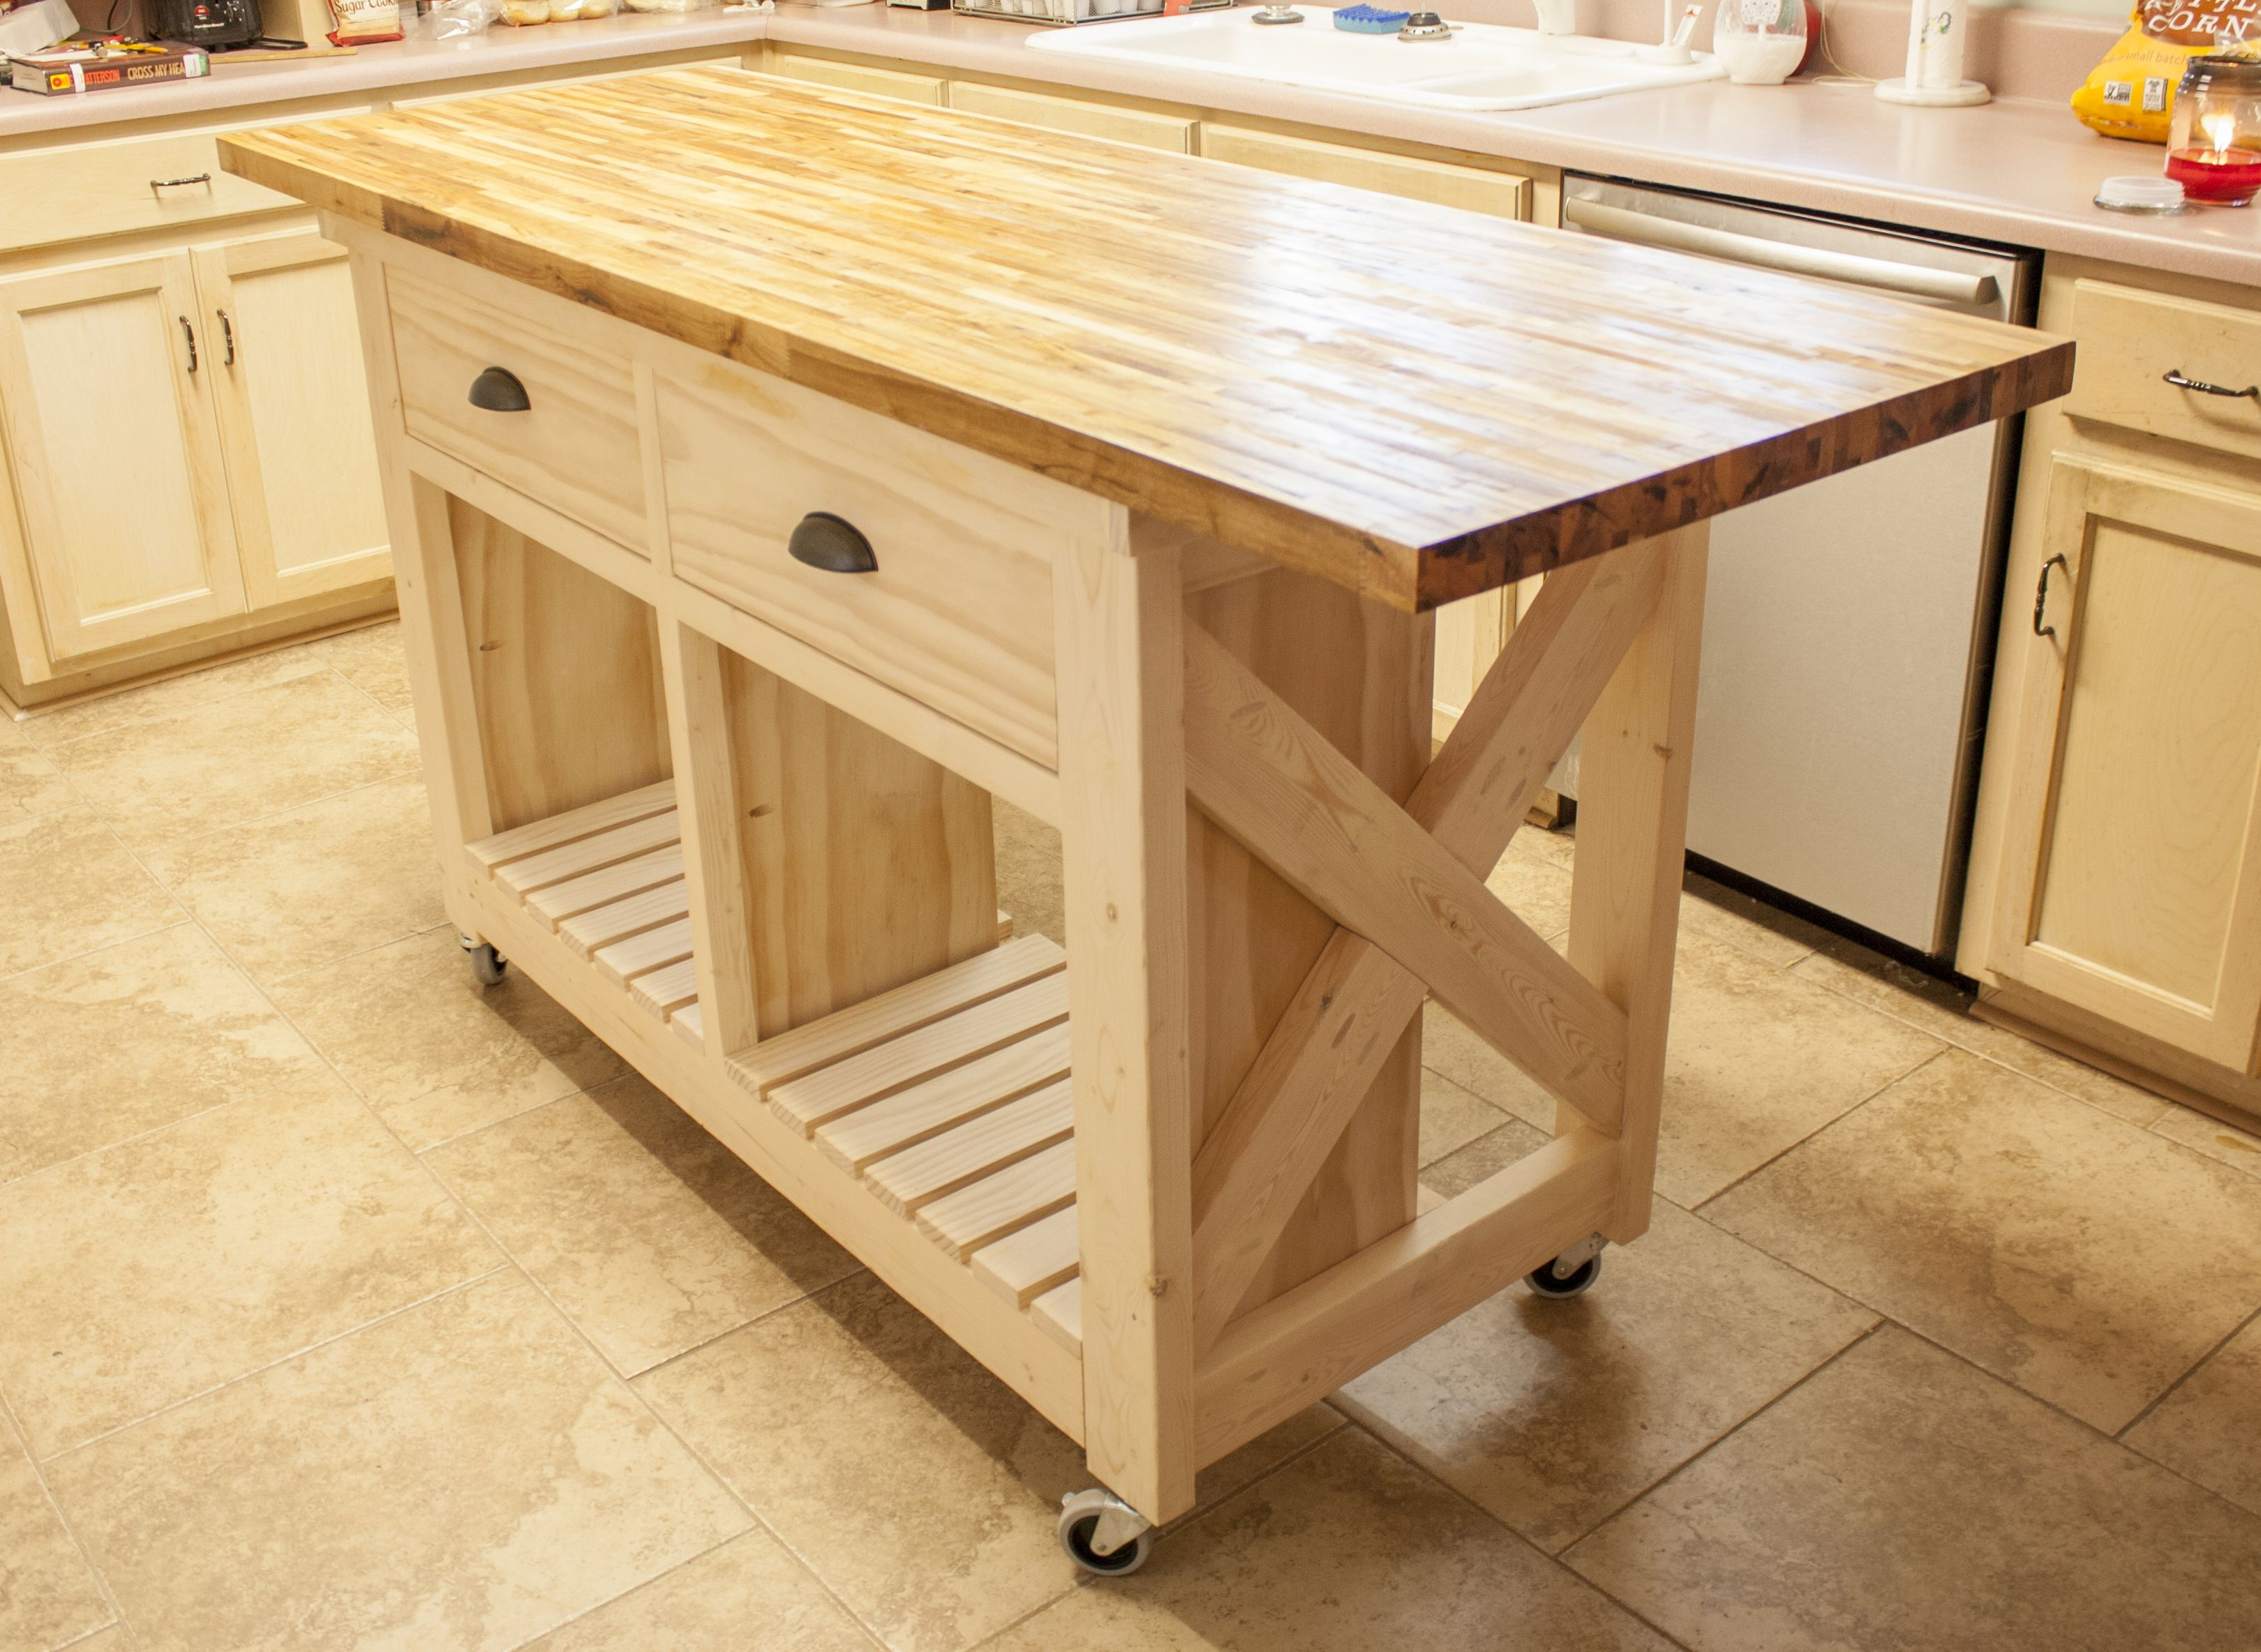 DIY Butcher Block Island Kitchen island with